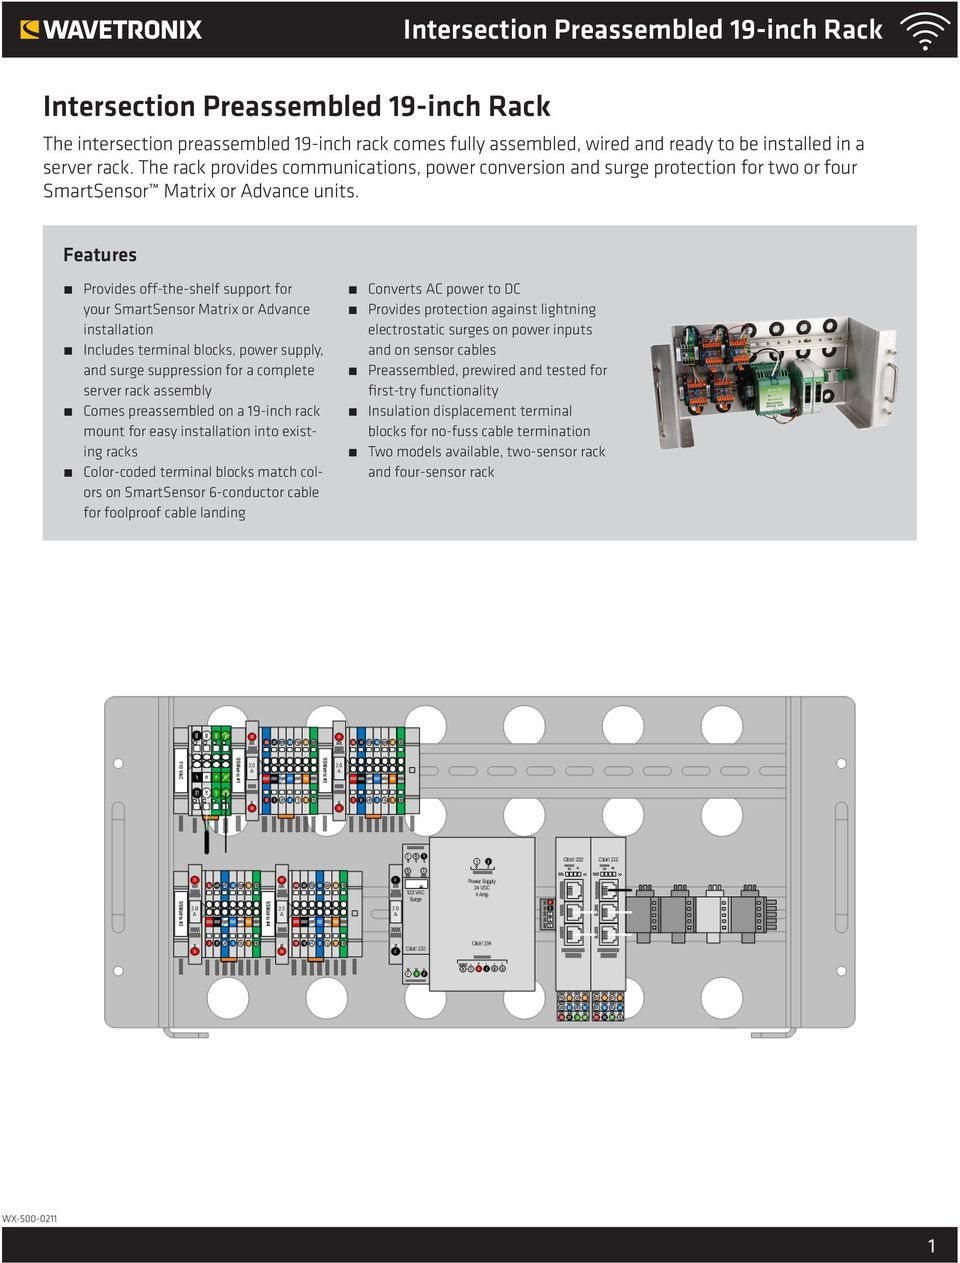 Features Provides off-the-shelf support for your SmartSensor Matrix or Advance installation Includes terminal blocks, power supply, and surge suppression for a complete server rack assembly Comes